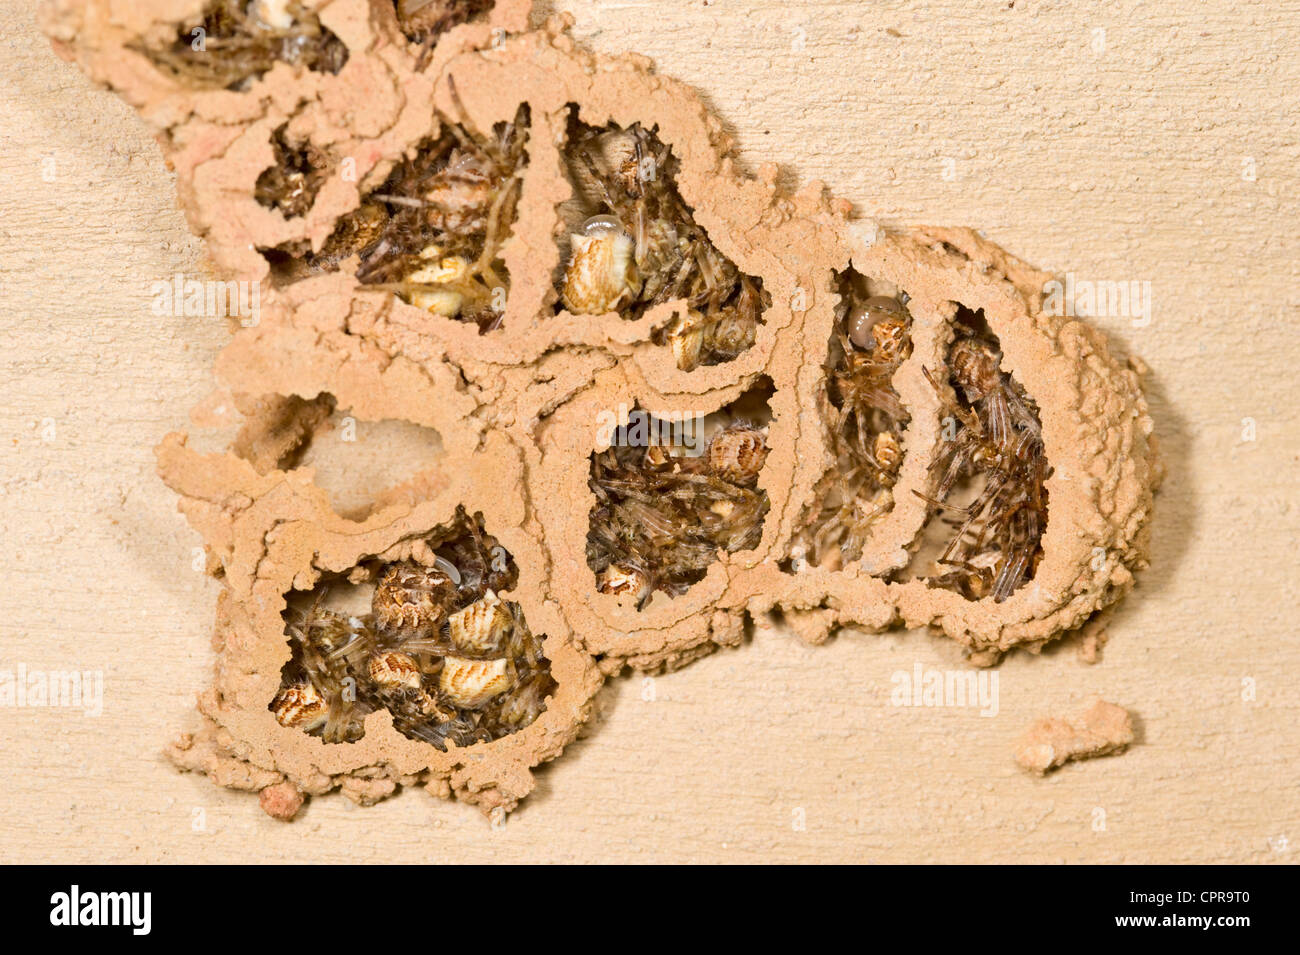 Spiders and grubs inside mud wasp nest - Stock Image